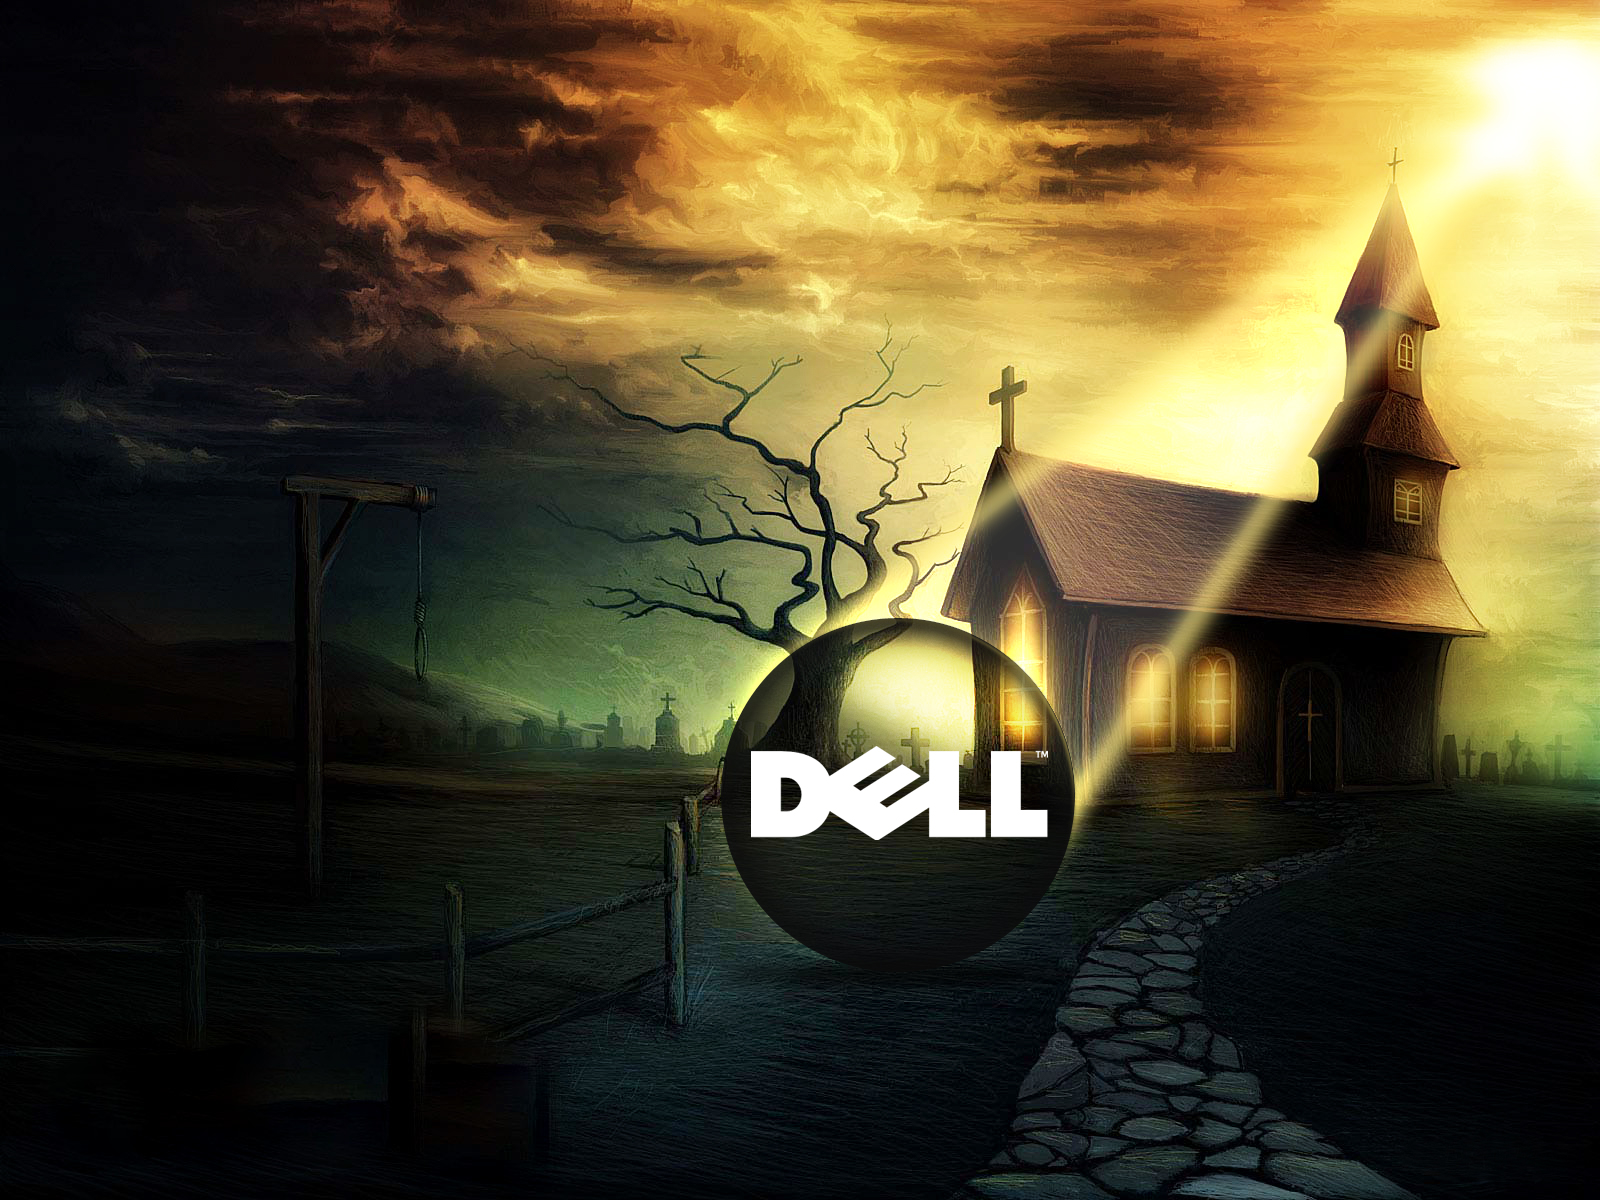 dell hd wallpaper 1920x1080 hd wallpaper